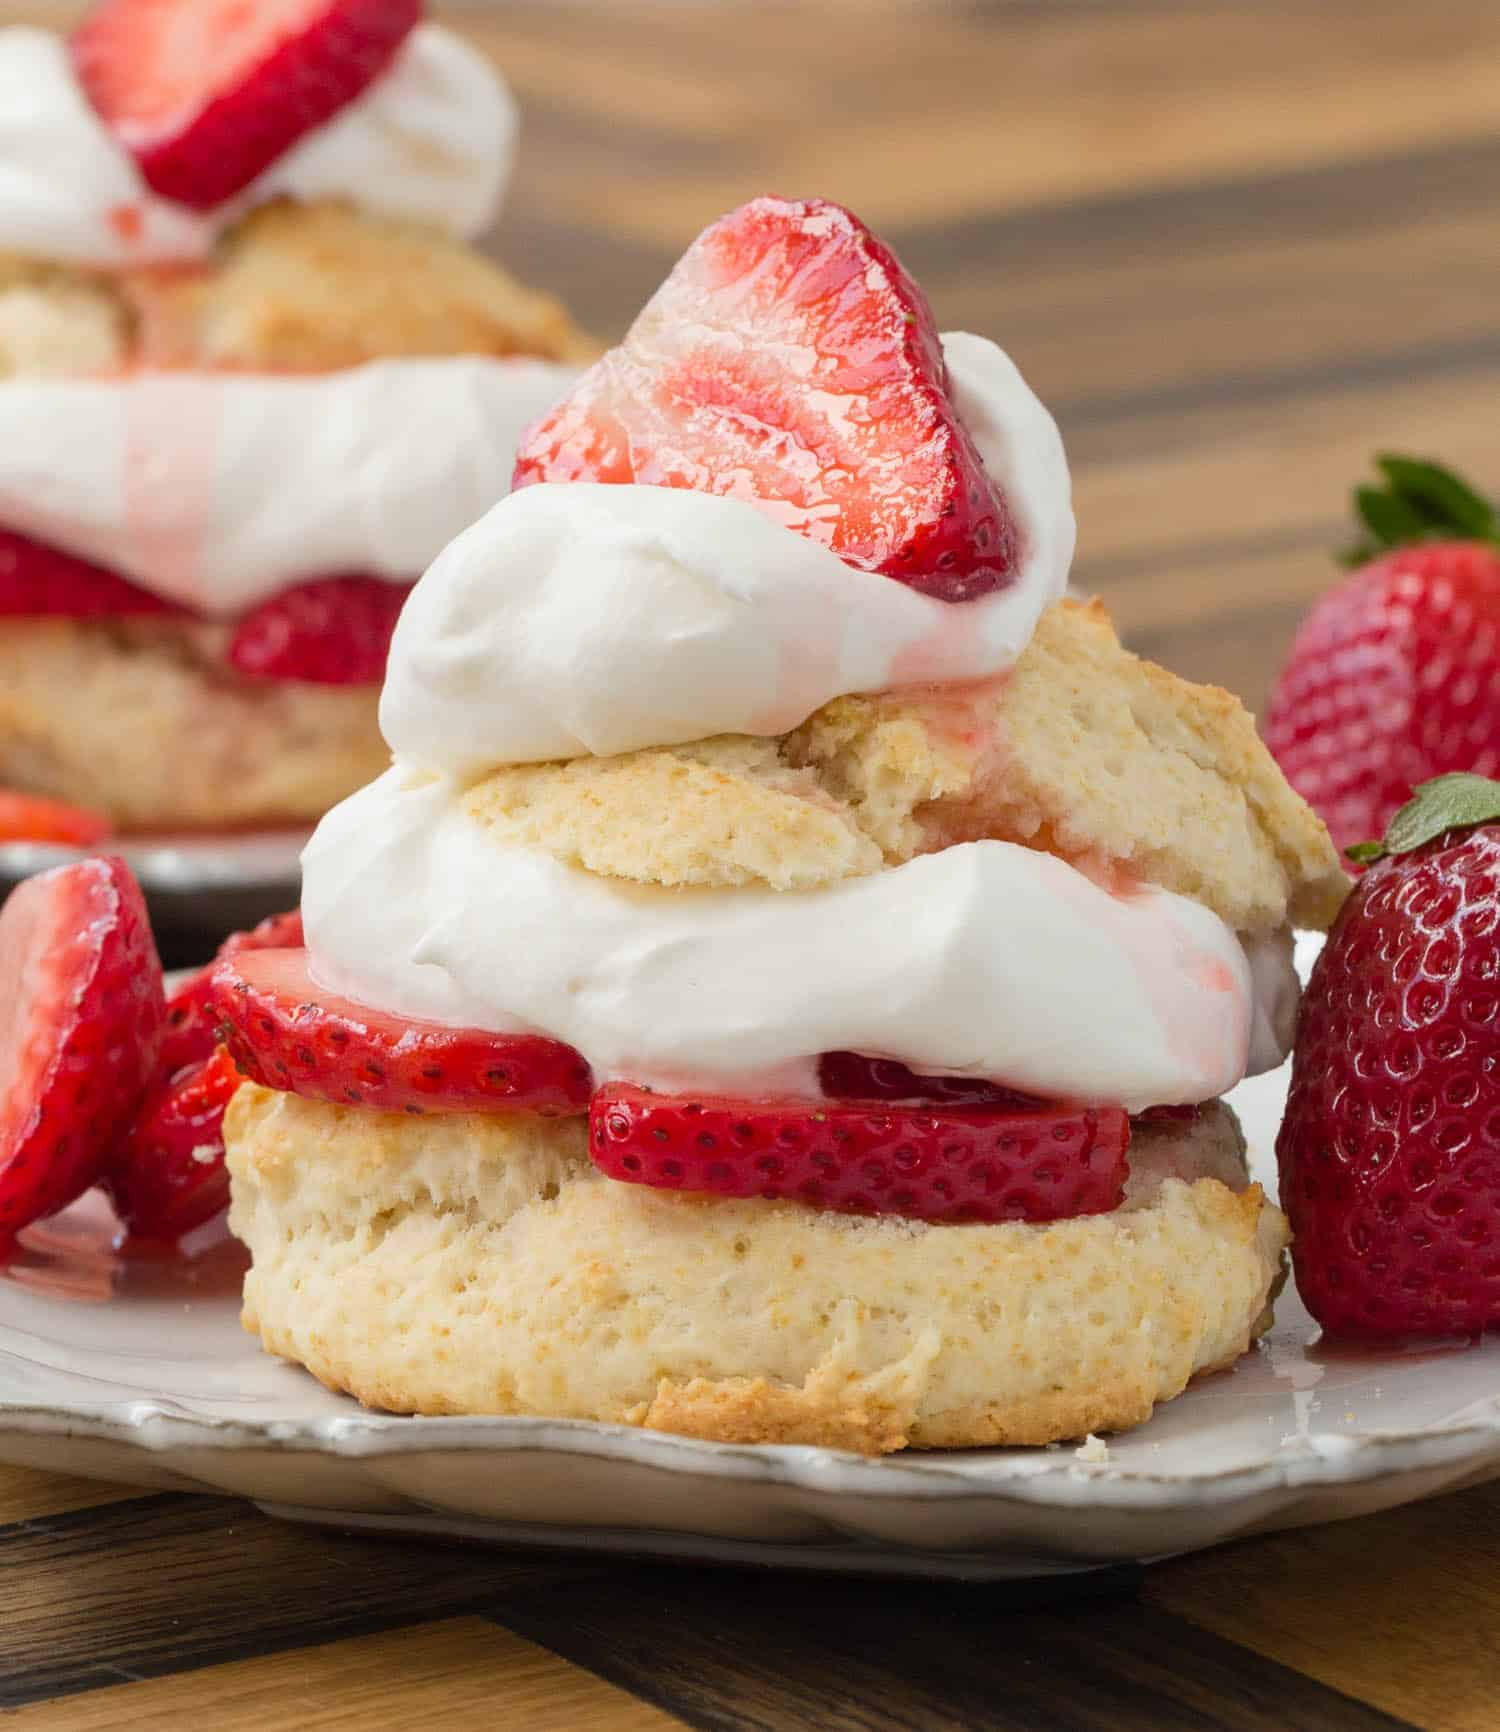 Straight-on view of a shortcake split in half and filled with whipped cream and sliced strawberries.